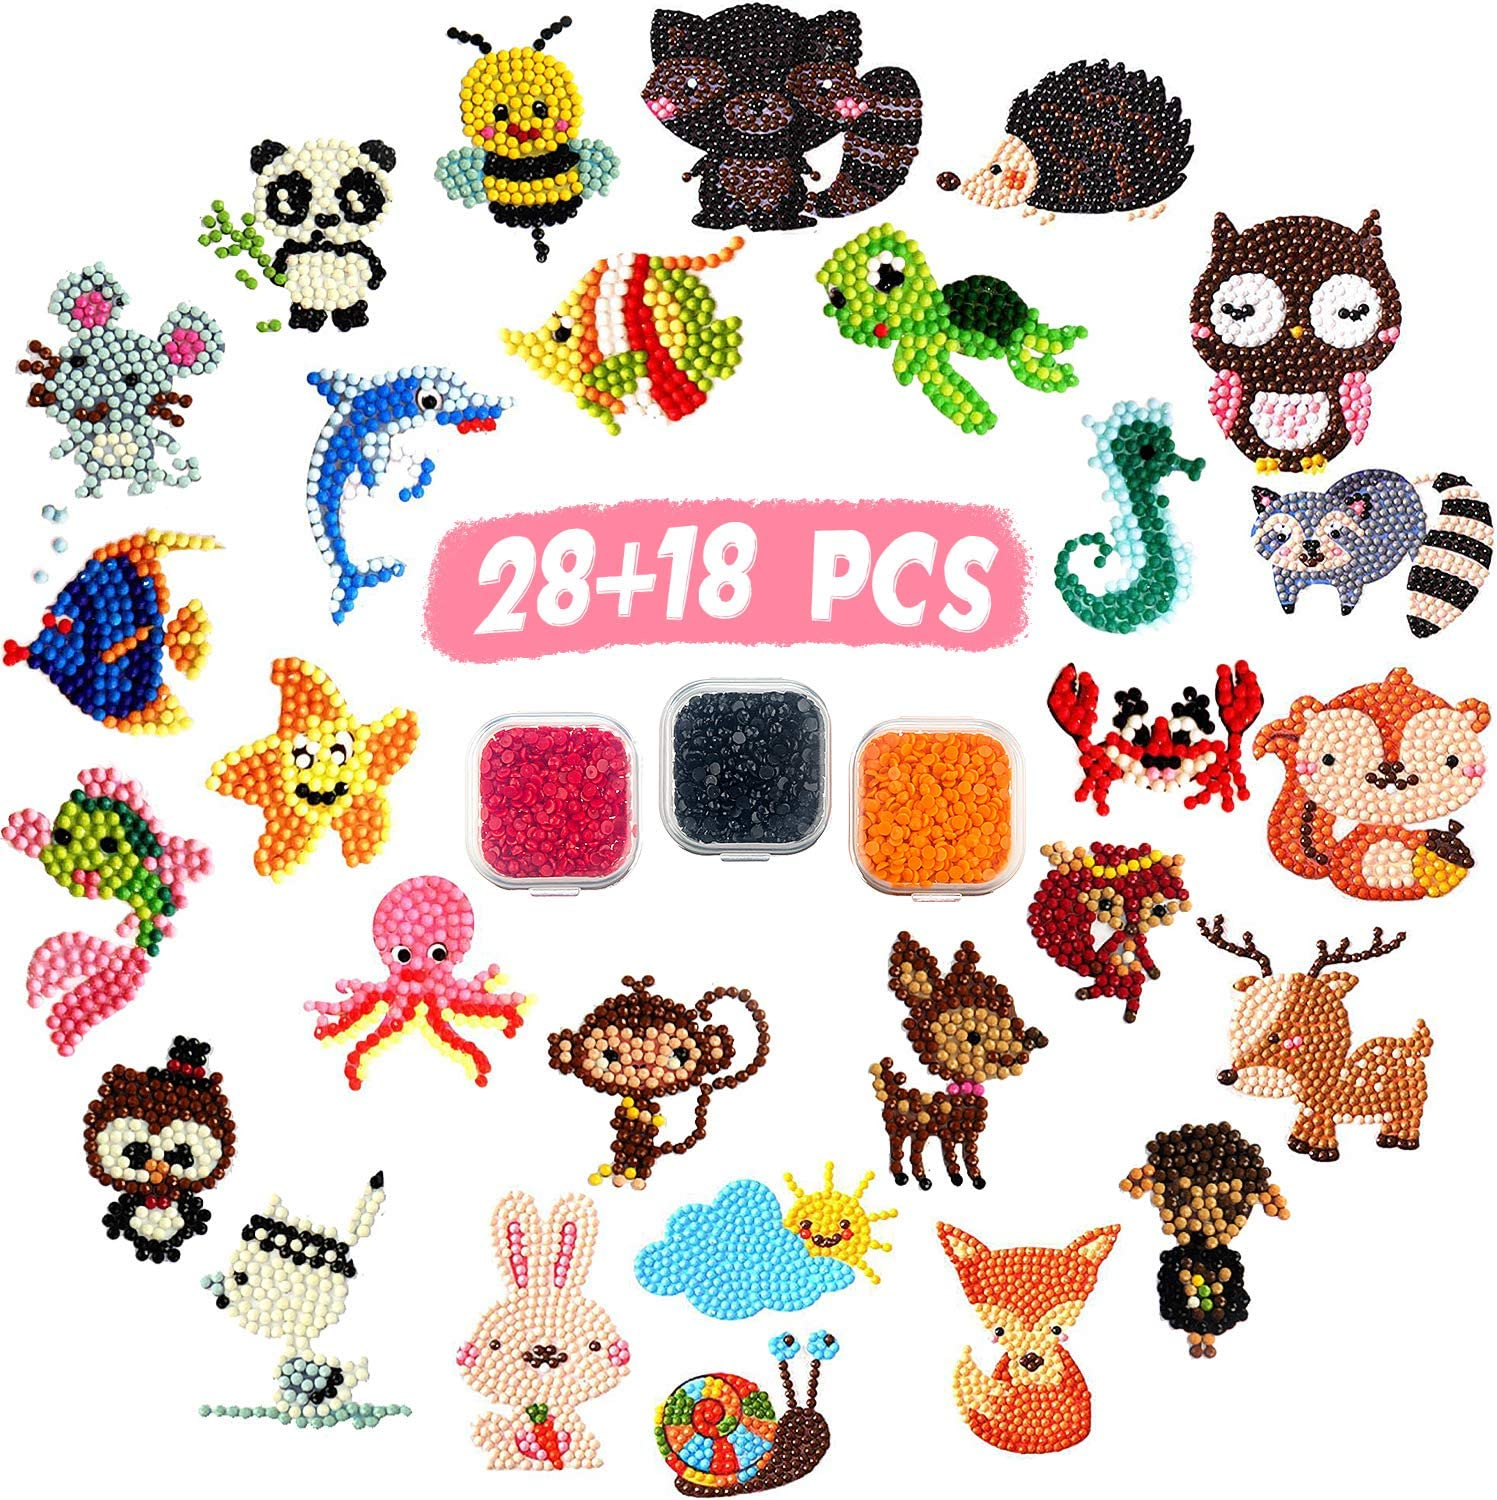 Outus 46 Pieces Diamond Painting Stickers for Kids and Adult Mosaic Stickers by Number Kits Animal Sea World Insect Beginners Crafts Making